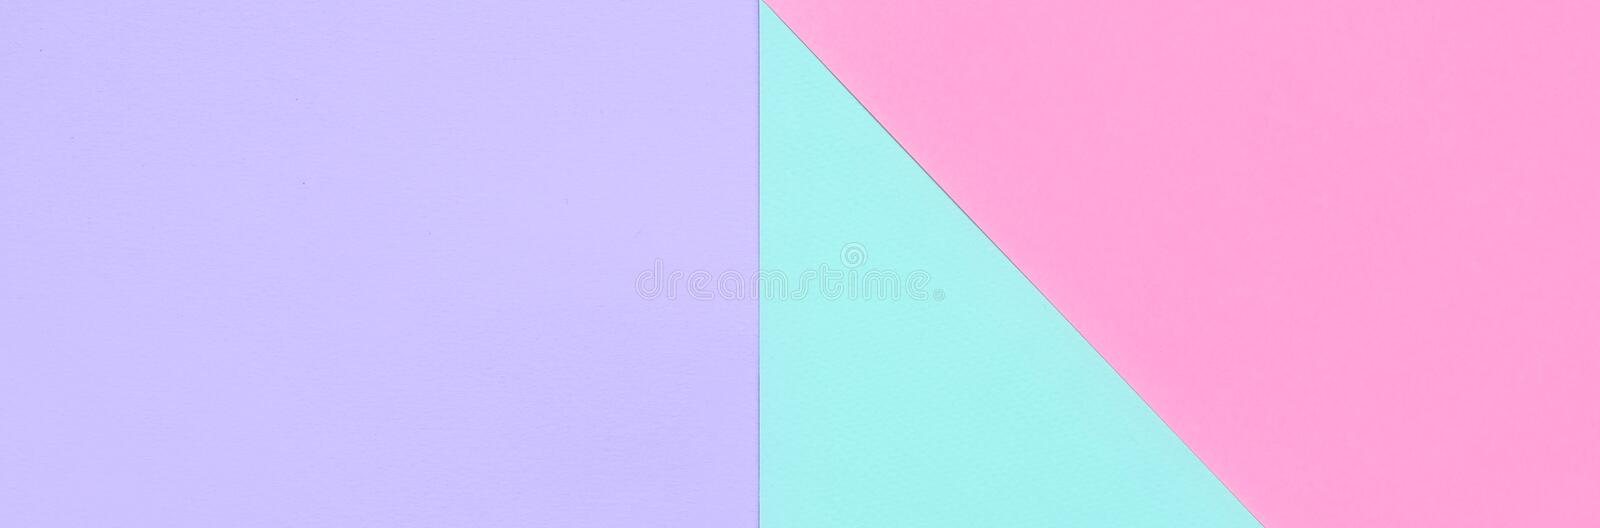 Texture background of fashion pastel colors. Pink, violet and blue geometric pattern papers. minimal abstract vector illustration